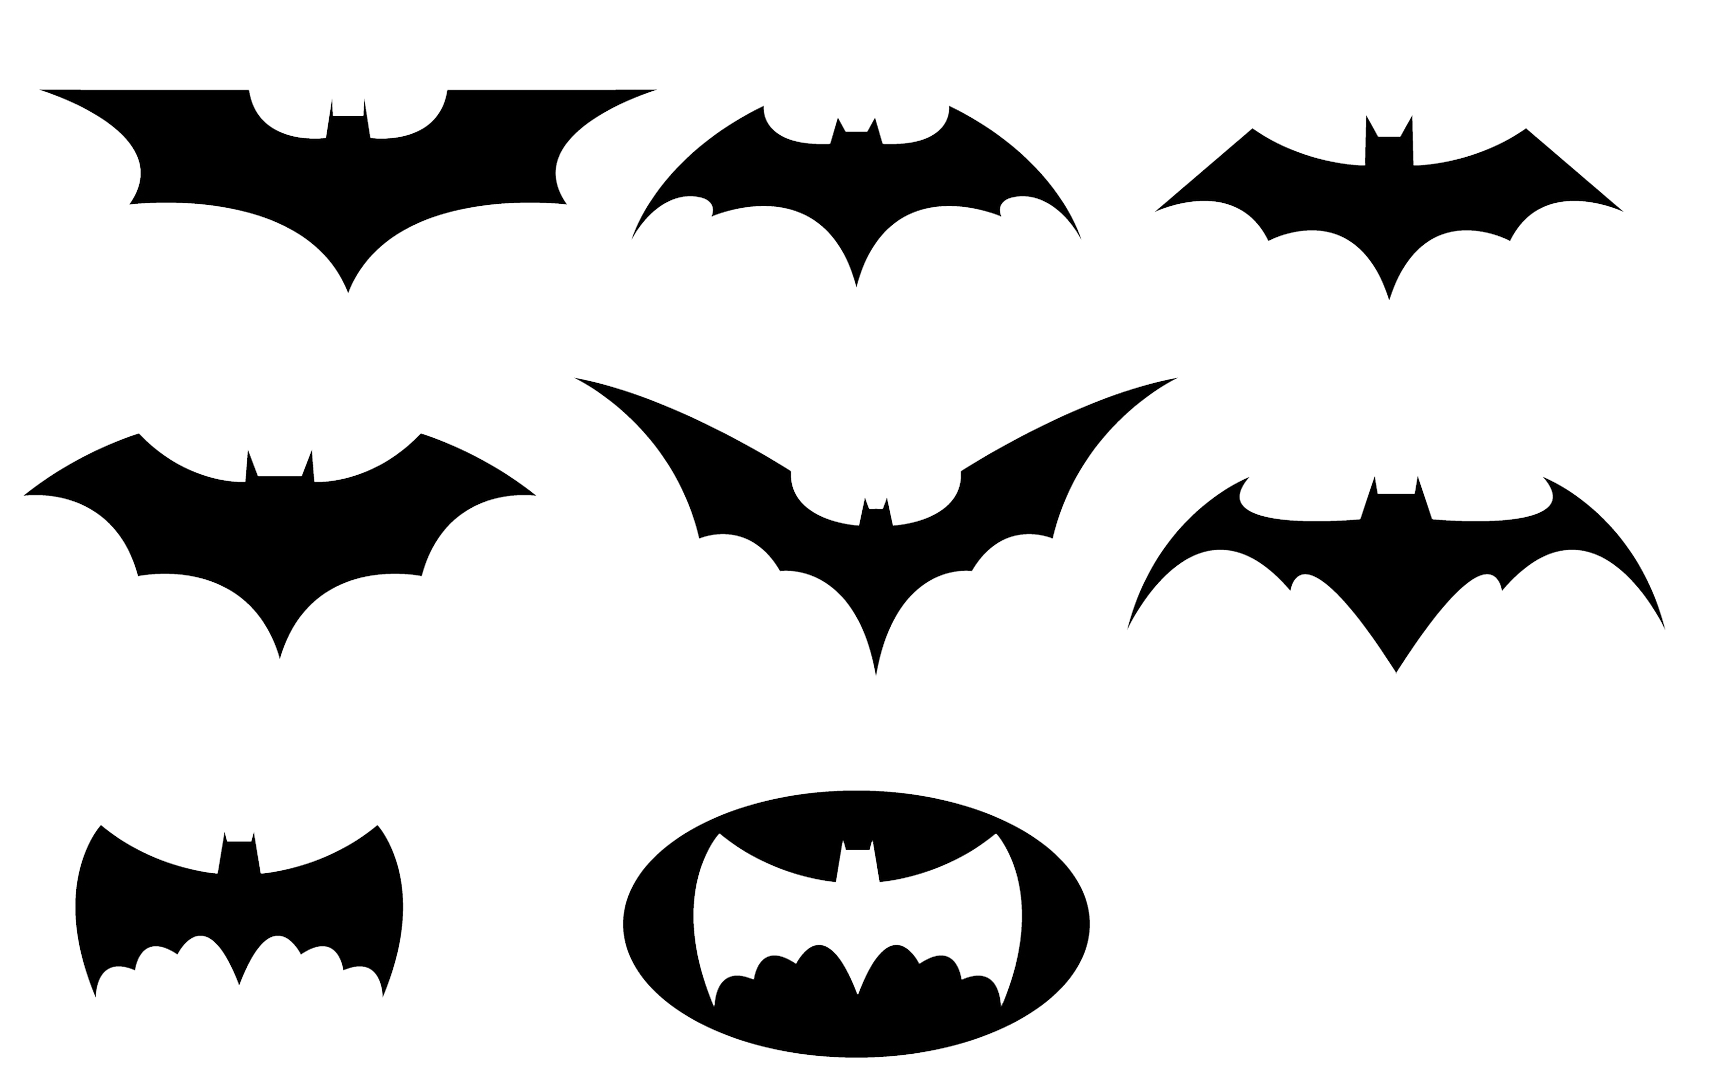 batman black and white logo clipart transparent background rh clipart info batman logo clipart black and white batman logo clipart black and white